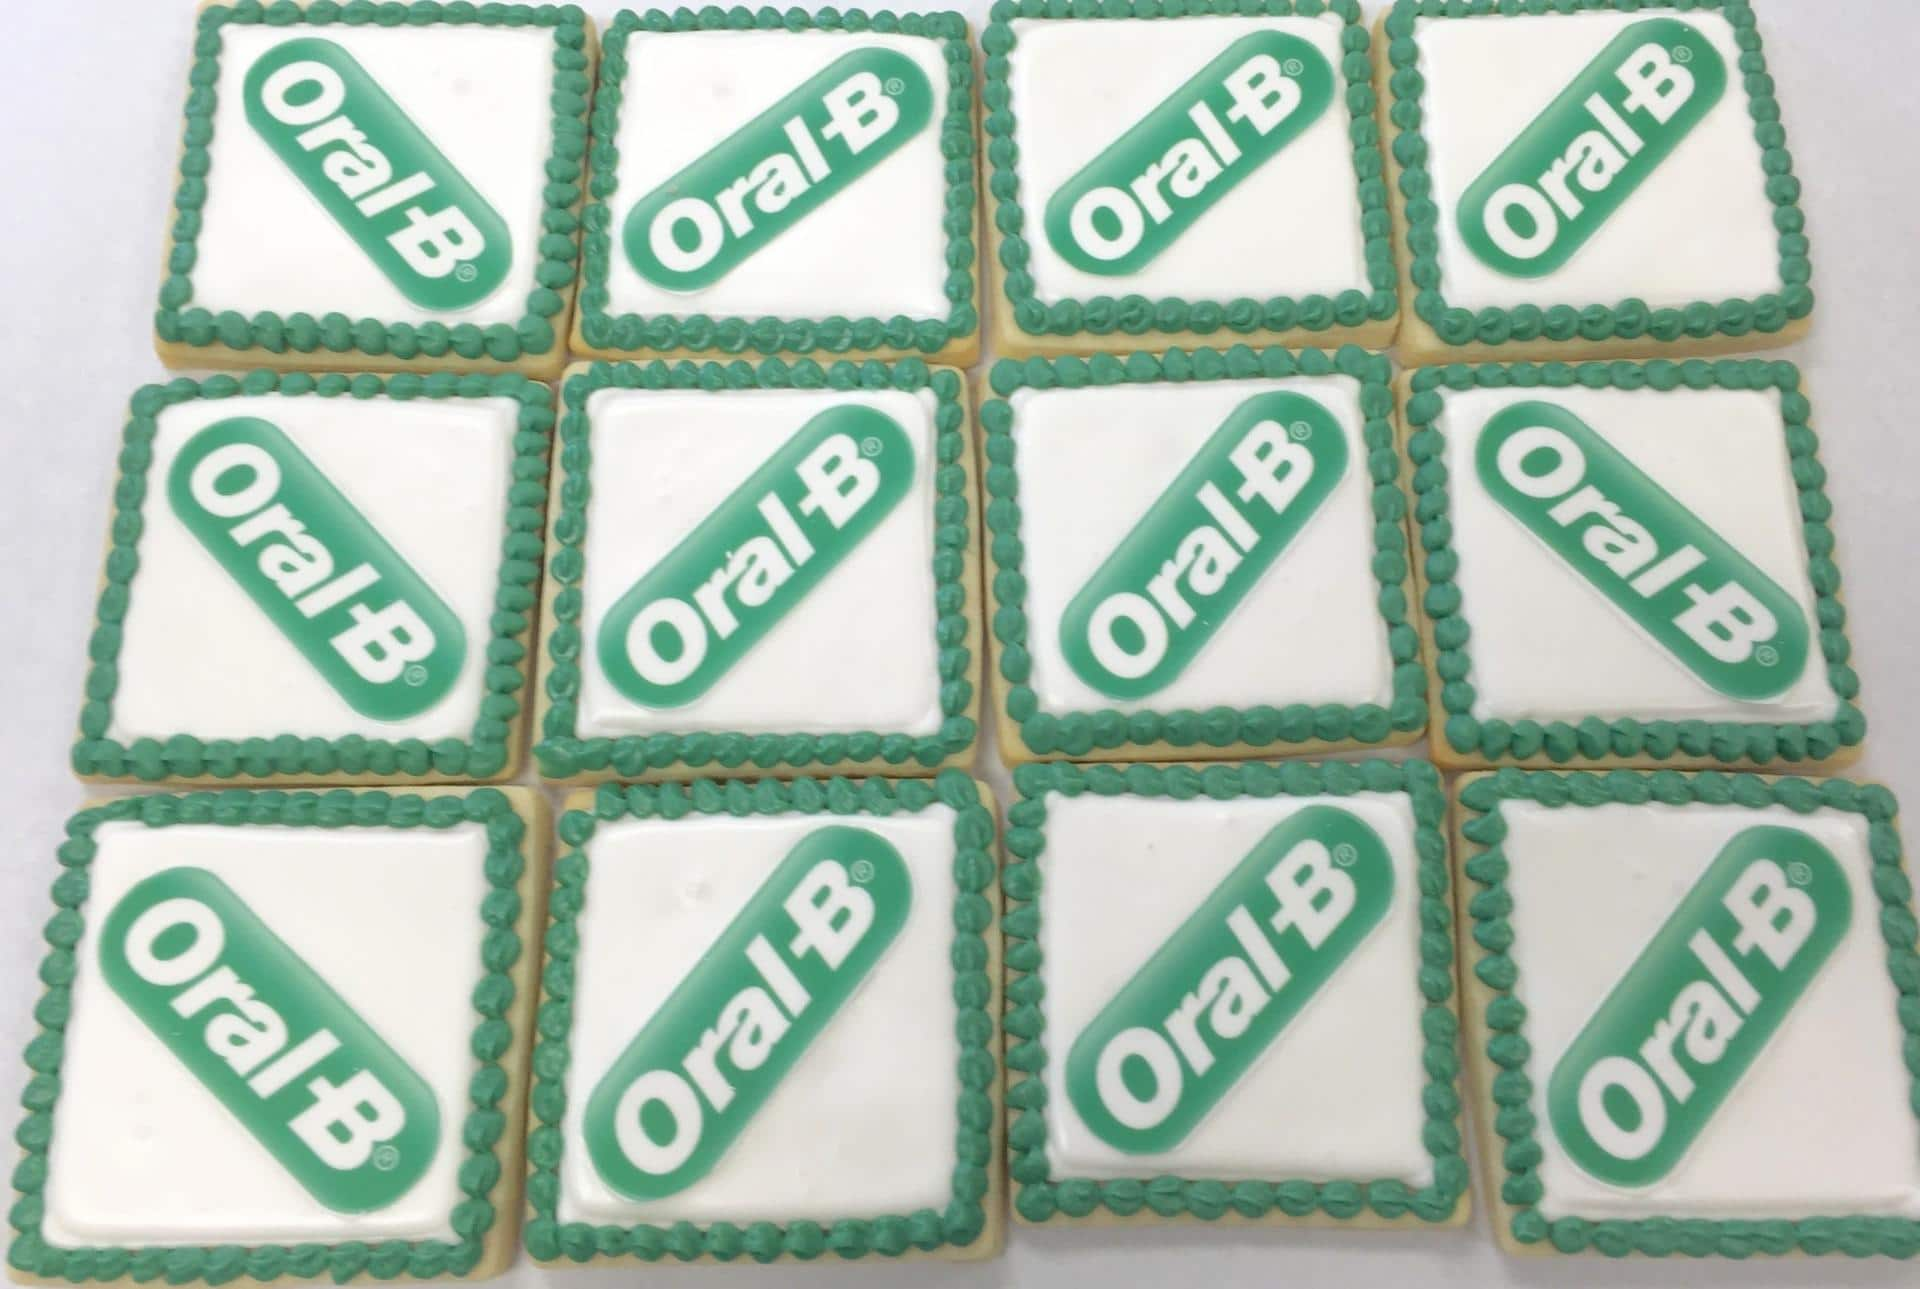 Oral B Corporate Logo Cookies